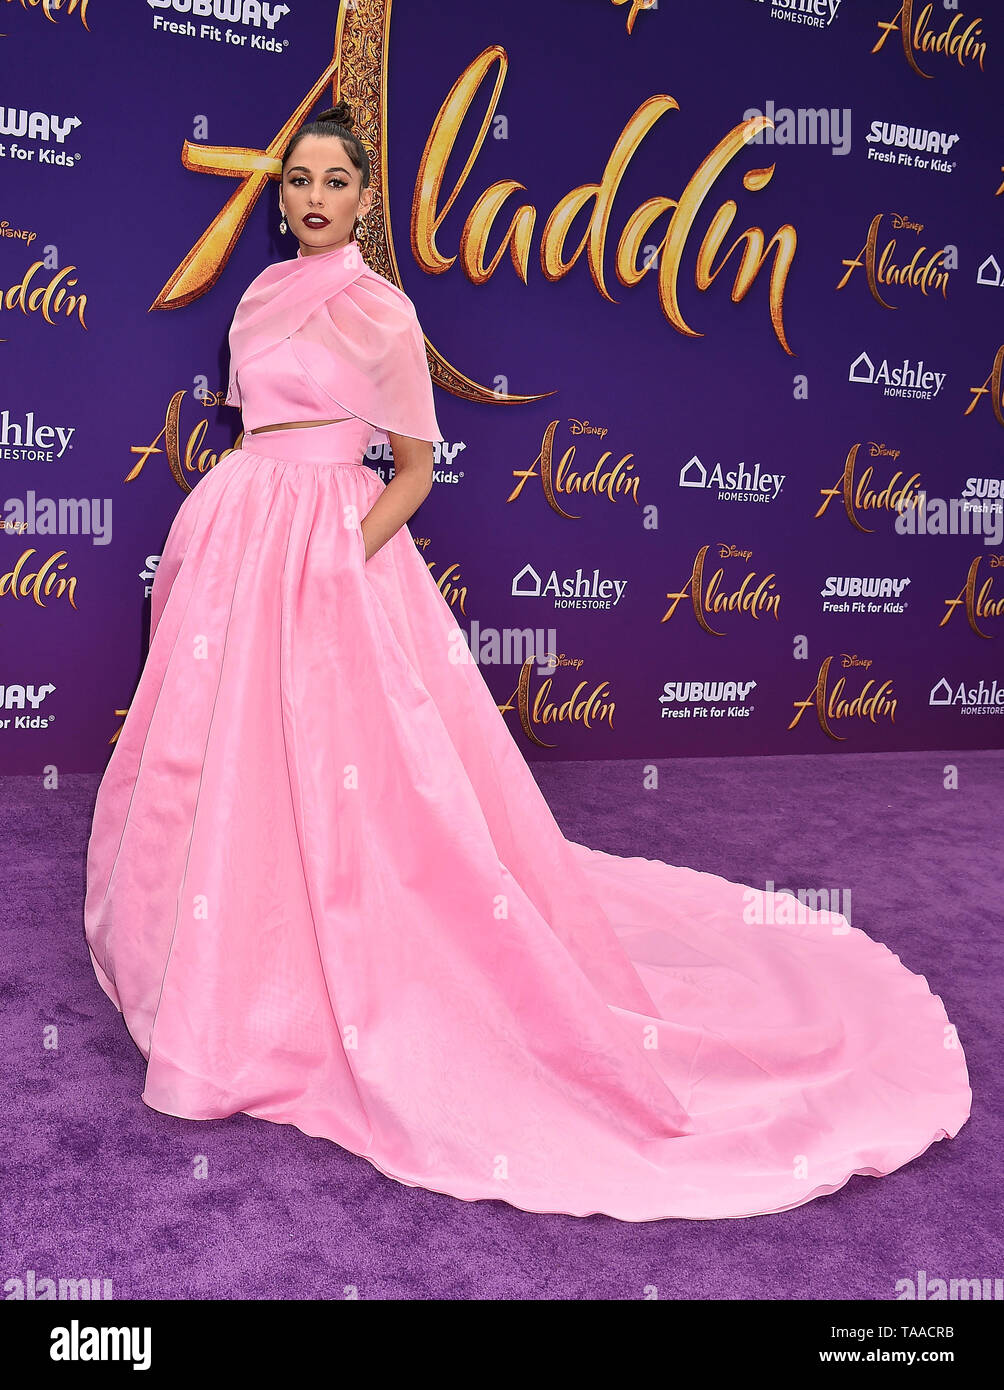 LOS ANGELES, CA - MAY 21: Naomi Scott attends the premiere of Disney's 'Aladdin' at El Capitan Theatre on May 21, 2019 in Los Angeles, California. - Stock Image